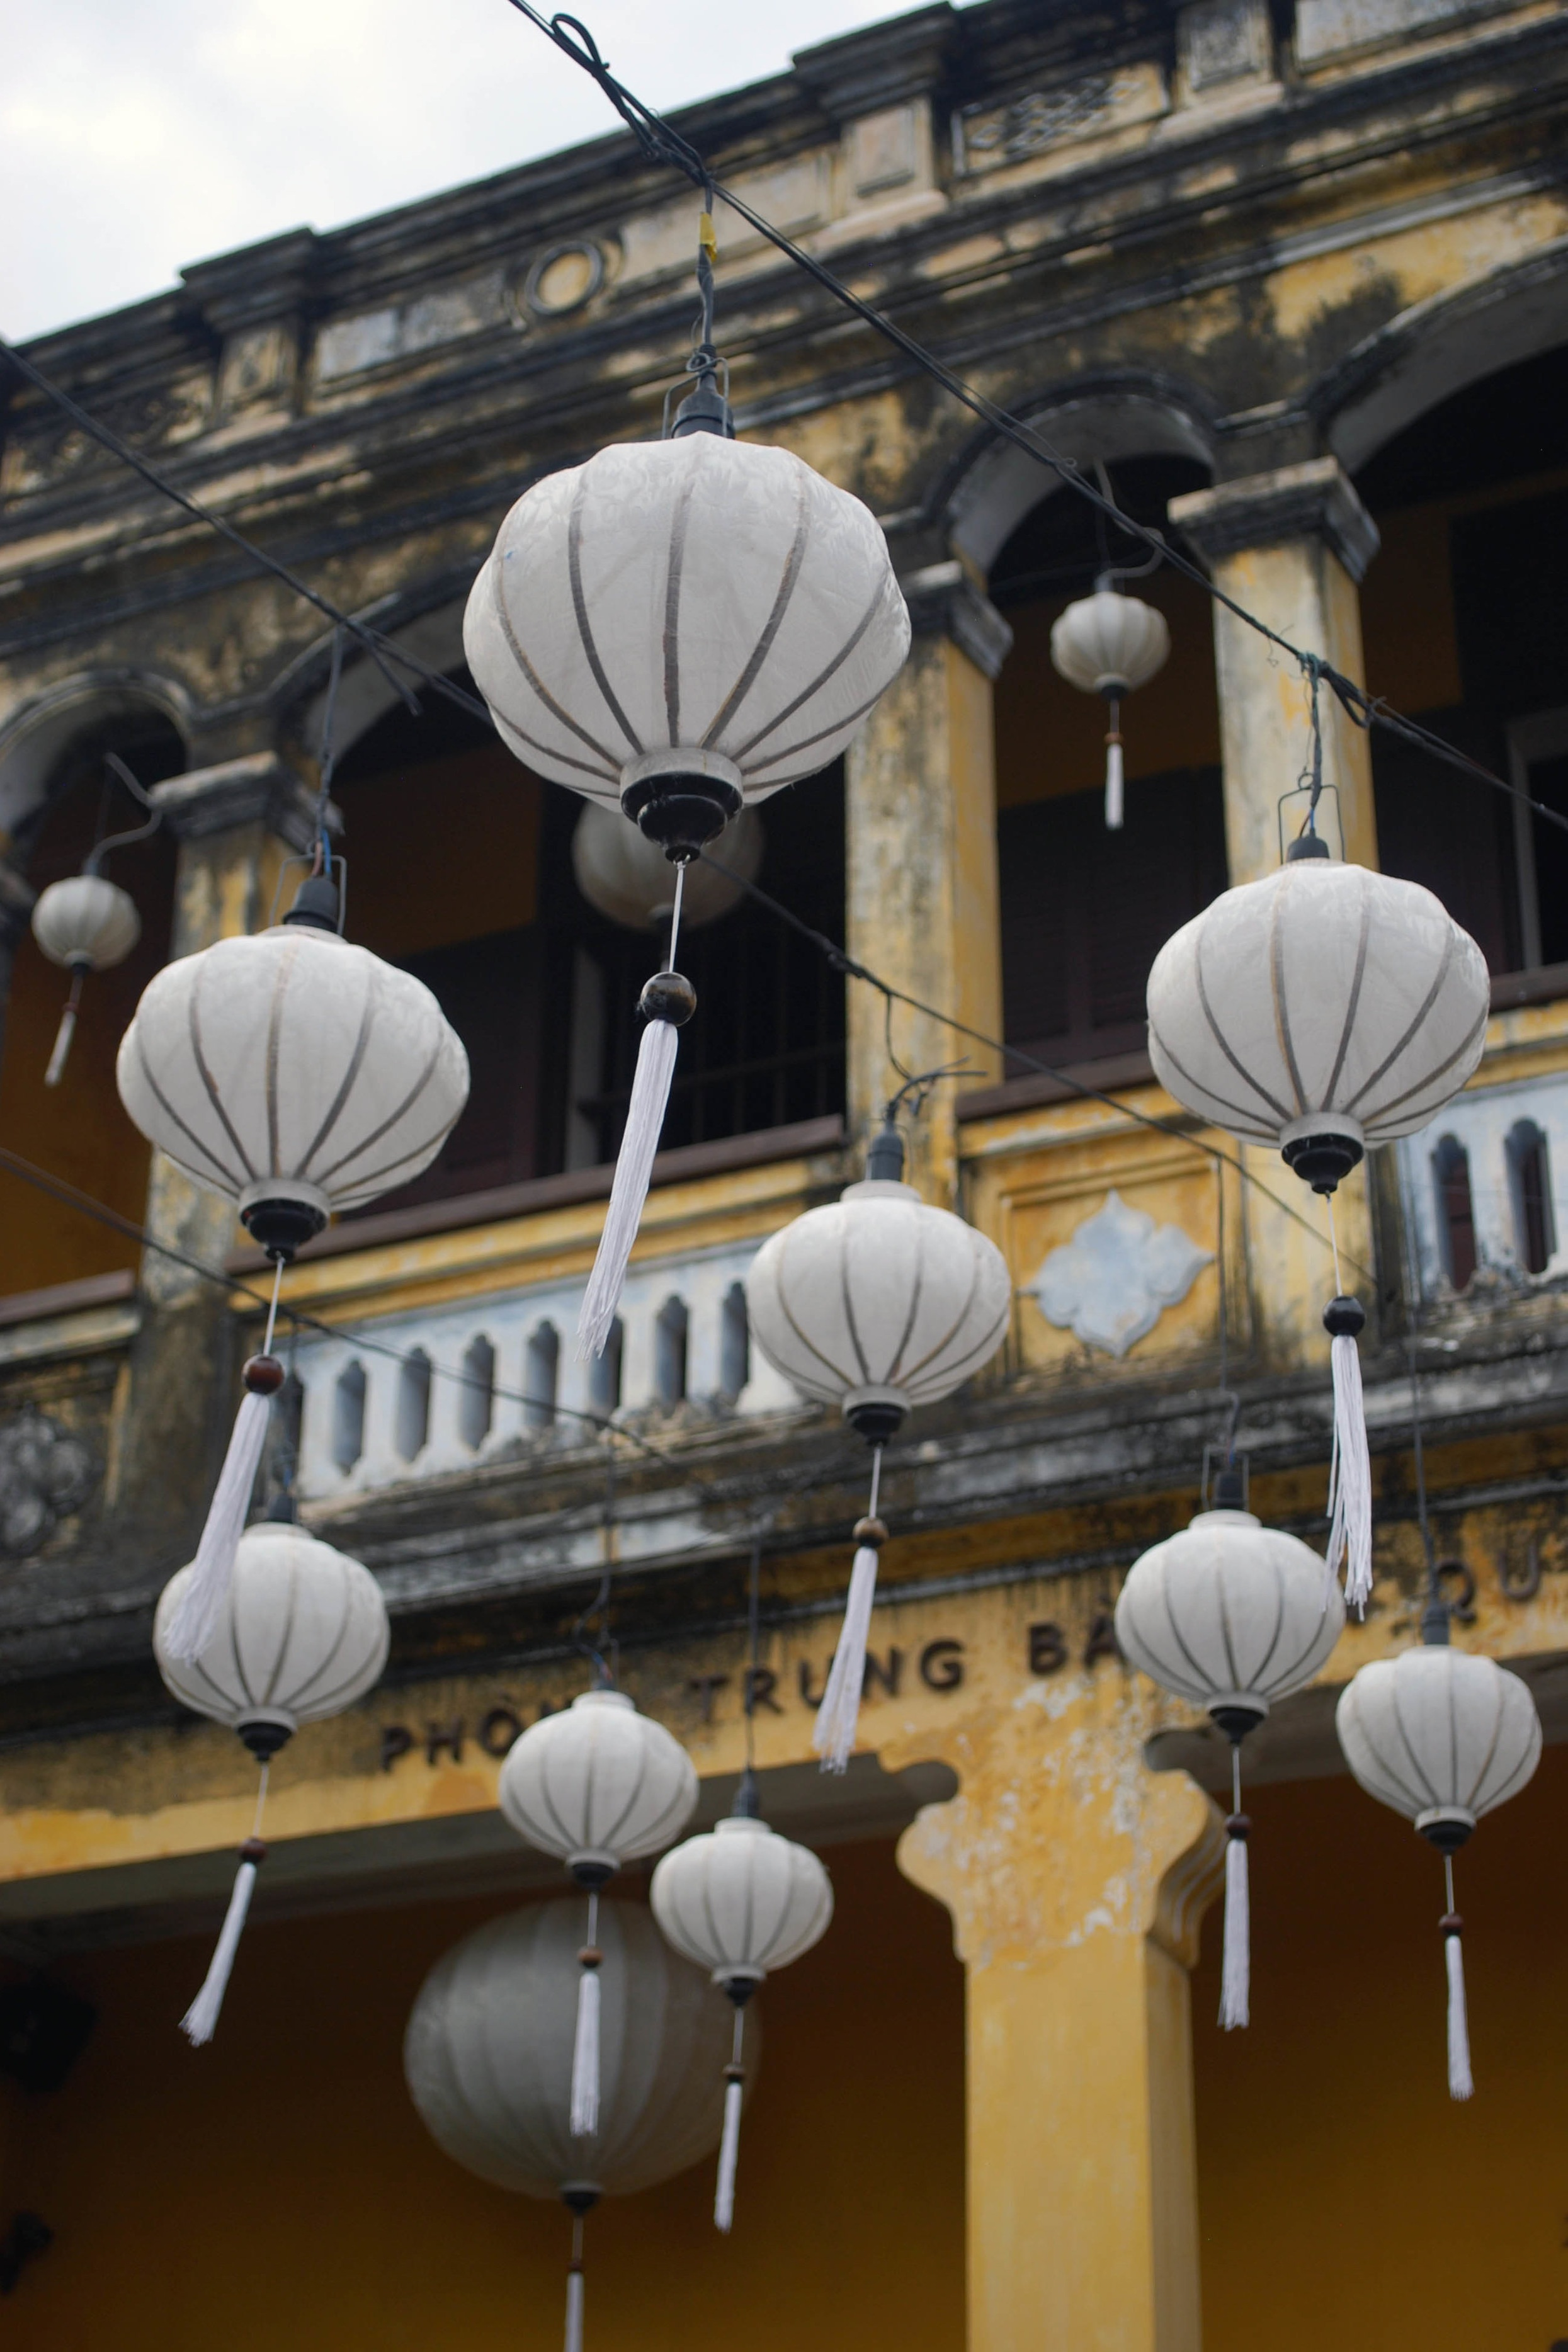 Lanterns hanging in the Old Town, Hoi An